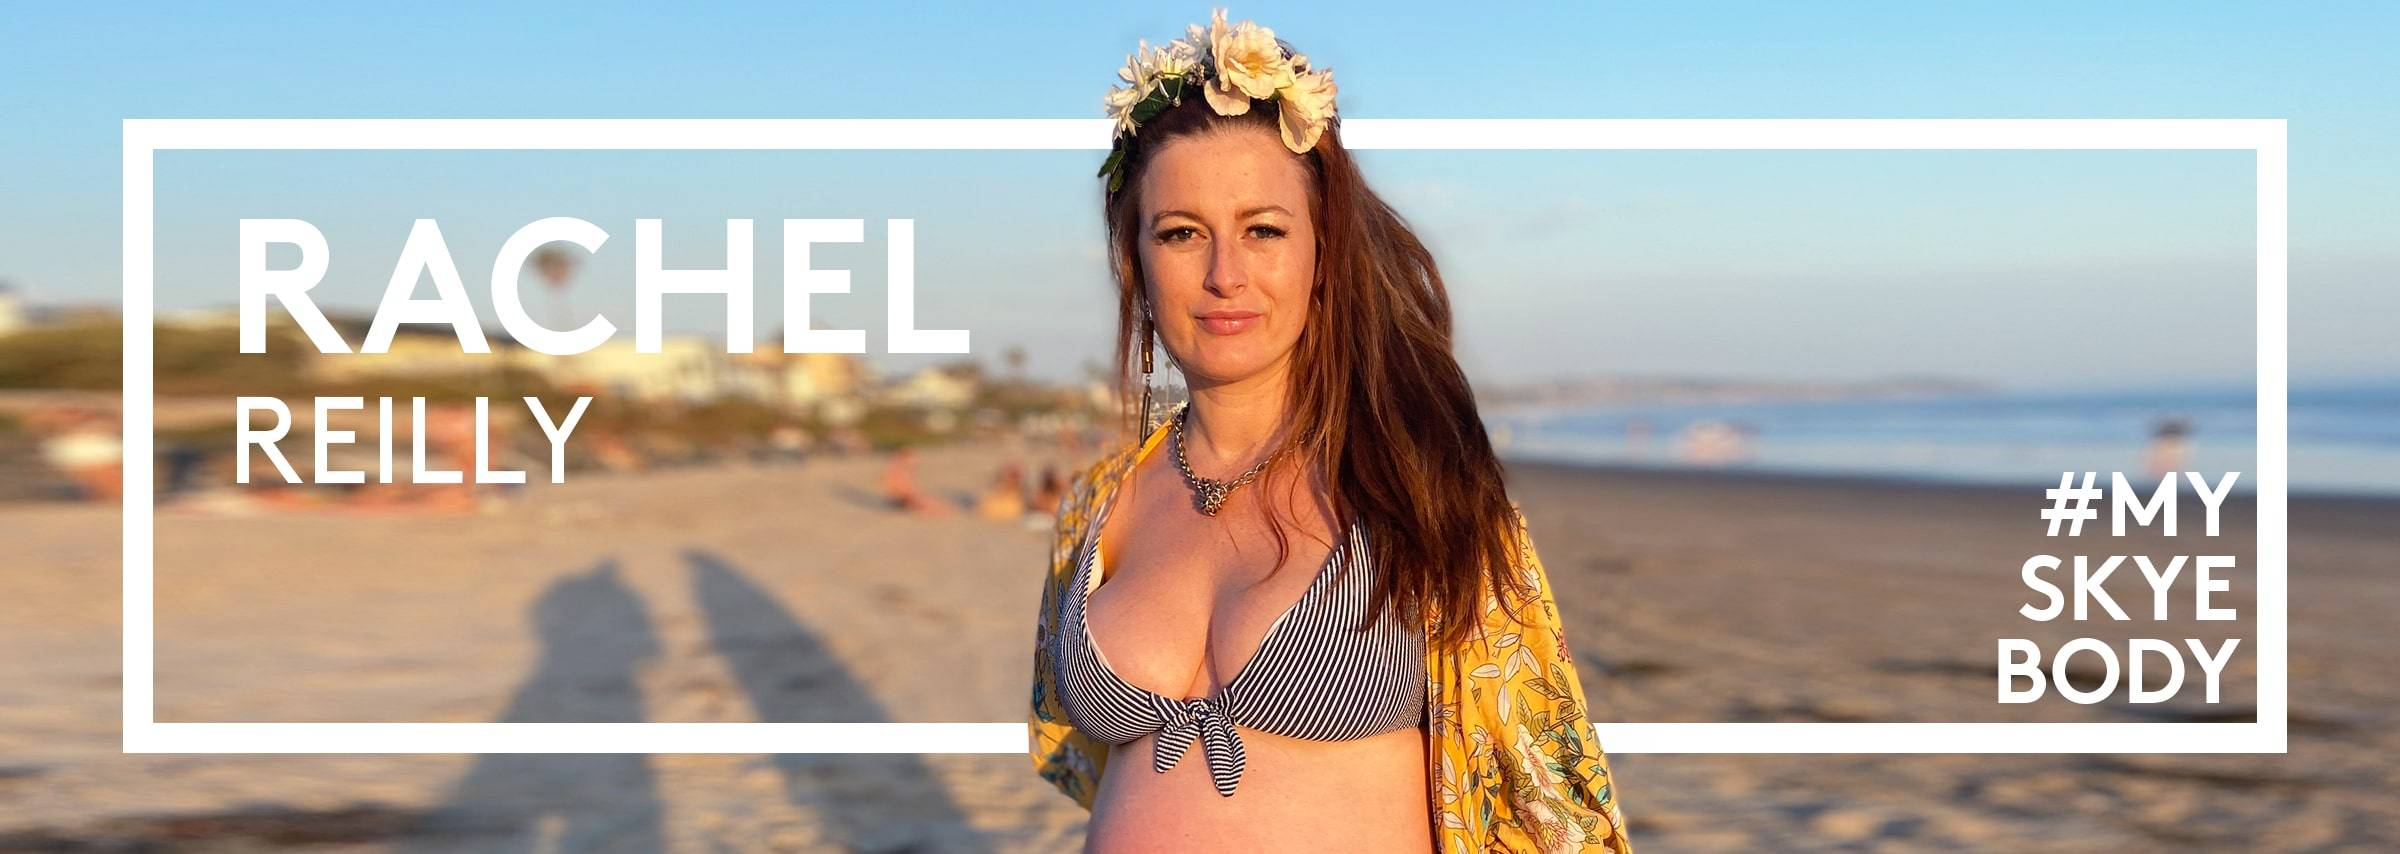 #MySkyeBody Conversation with Rachel Reilly